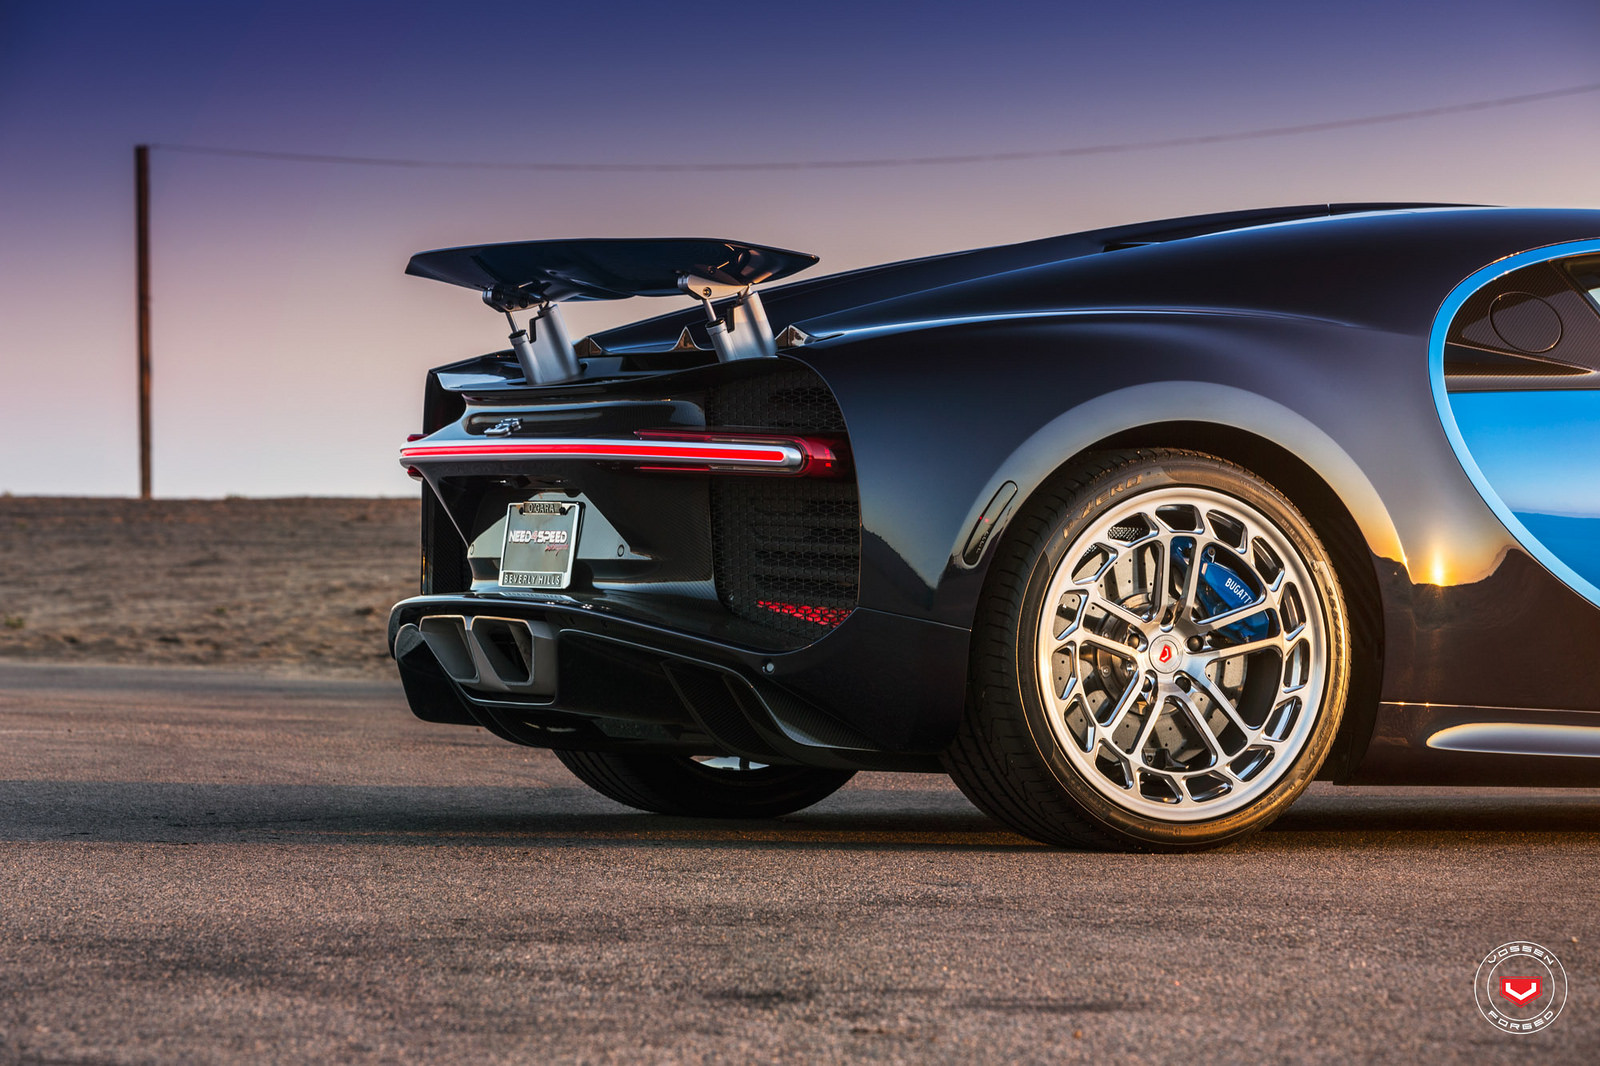 Sieu-xe-Bugatti-Chiron-thoi-mien-nguoi-dung-voi-banh-mam-do-24inch-Vossen-anh-3